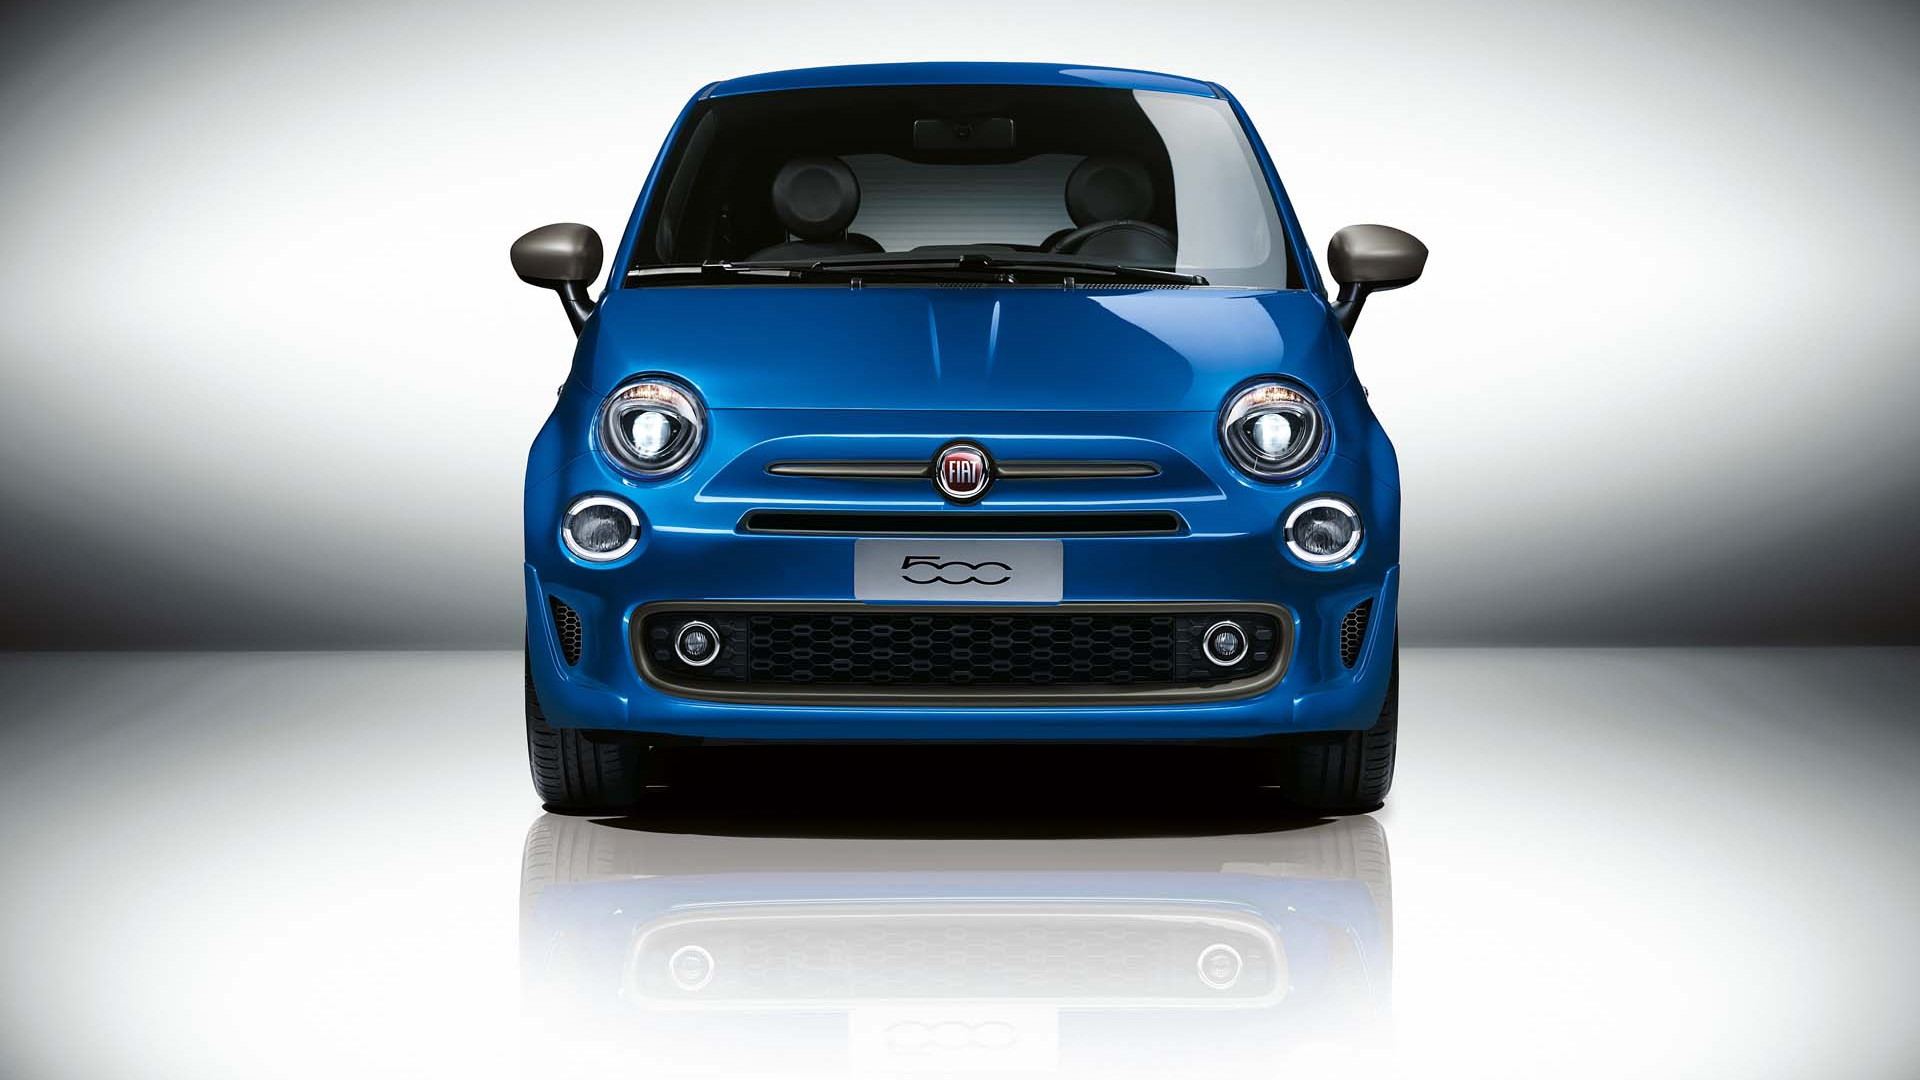 Fiat 500l News Green Car Photos News Reviews And Insights